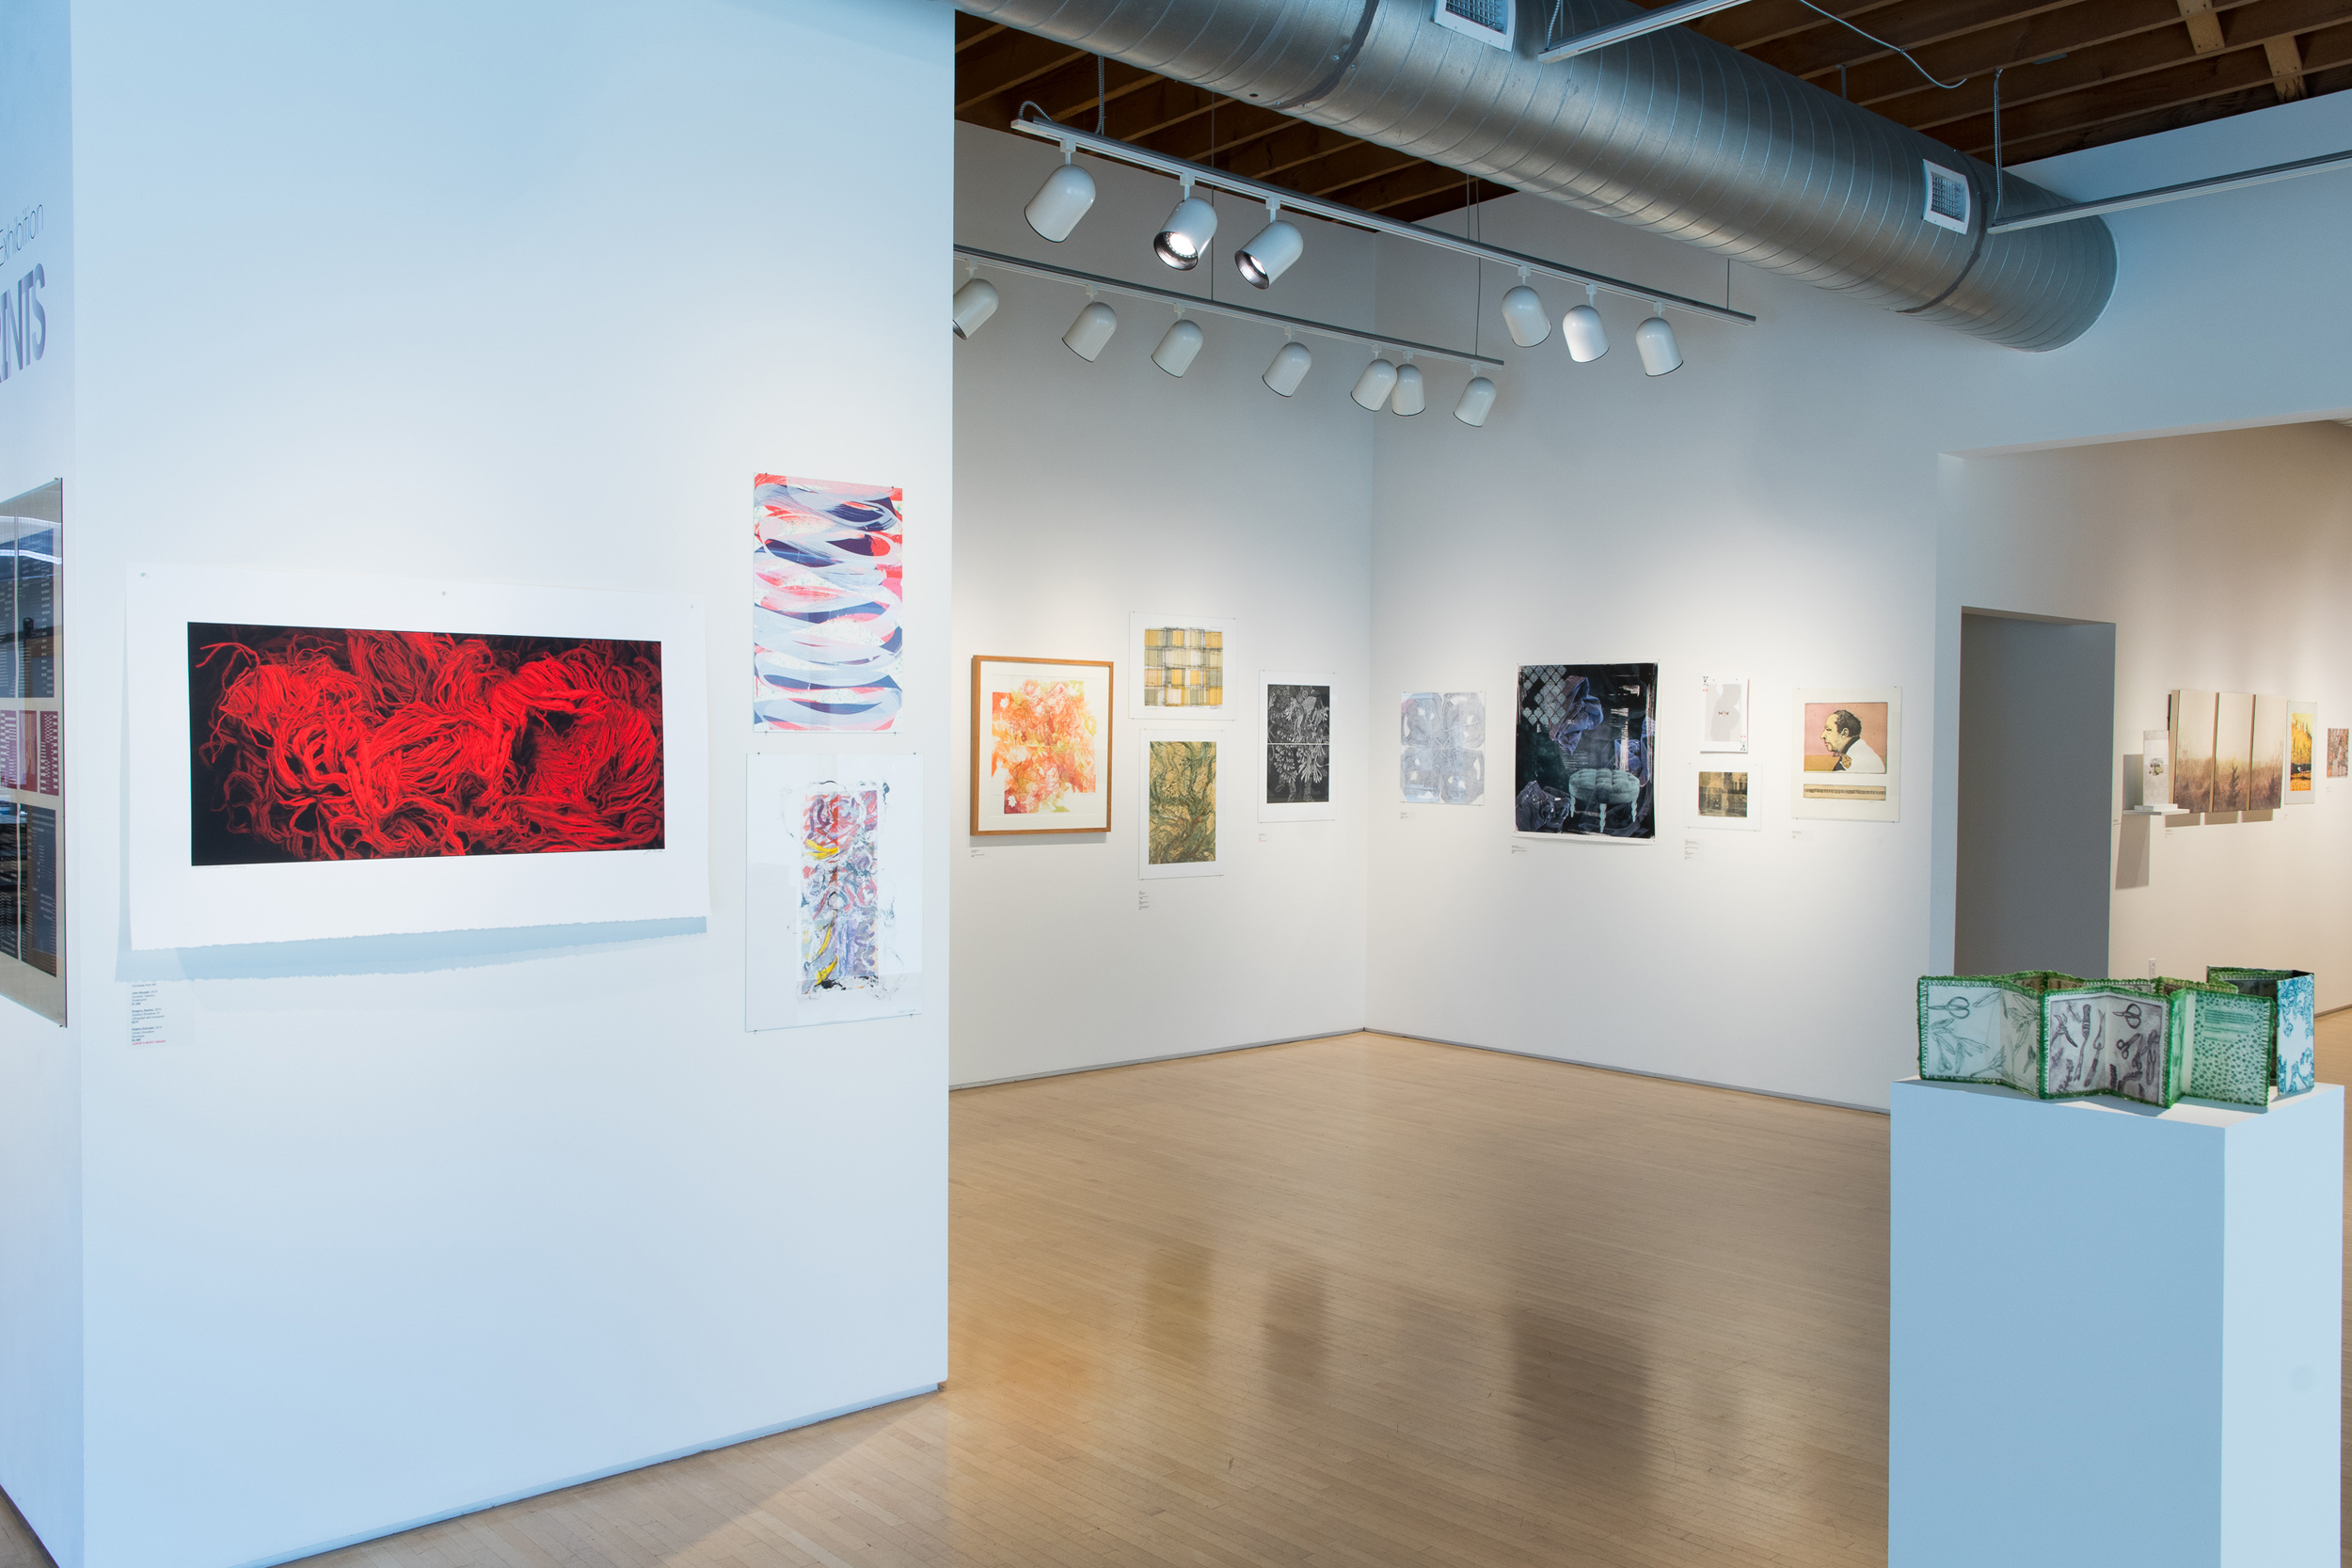 Highpoint PrintmakingStand Out Prints Exhibit180927a0203.JPG